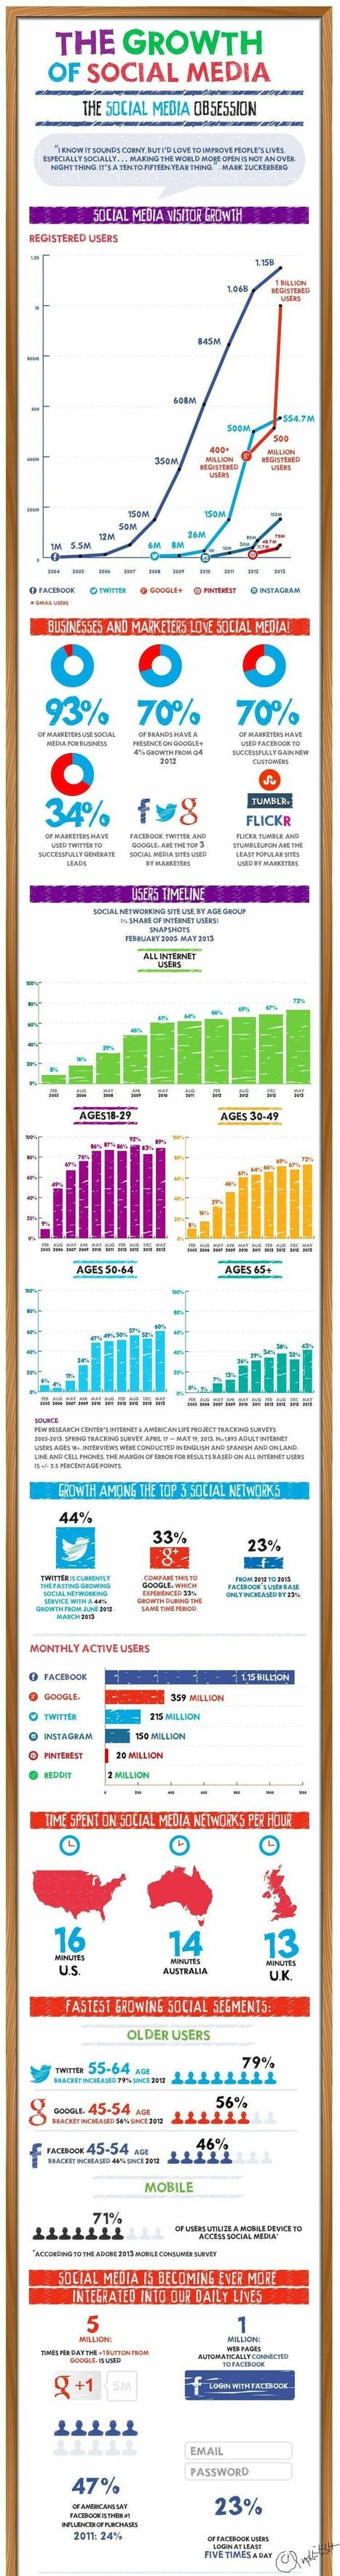 Social Media - What Does Social Media Growth Look Like [Infographic]  MarketingProfs Article... | Social nEtwOrking news | Scoop.it